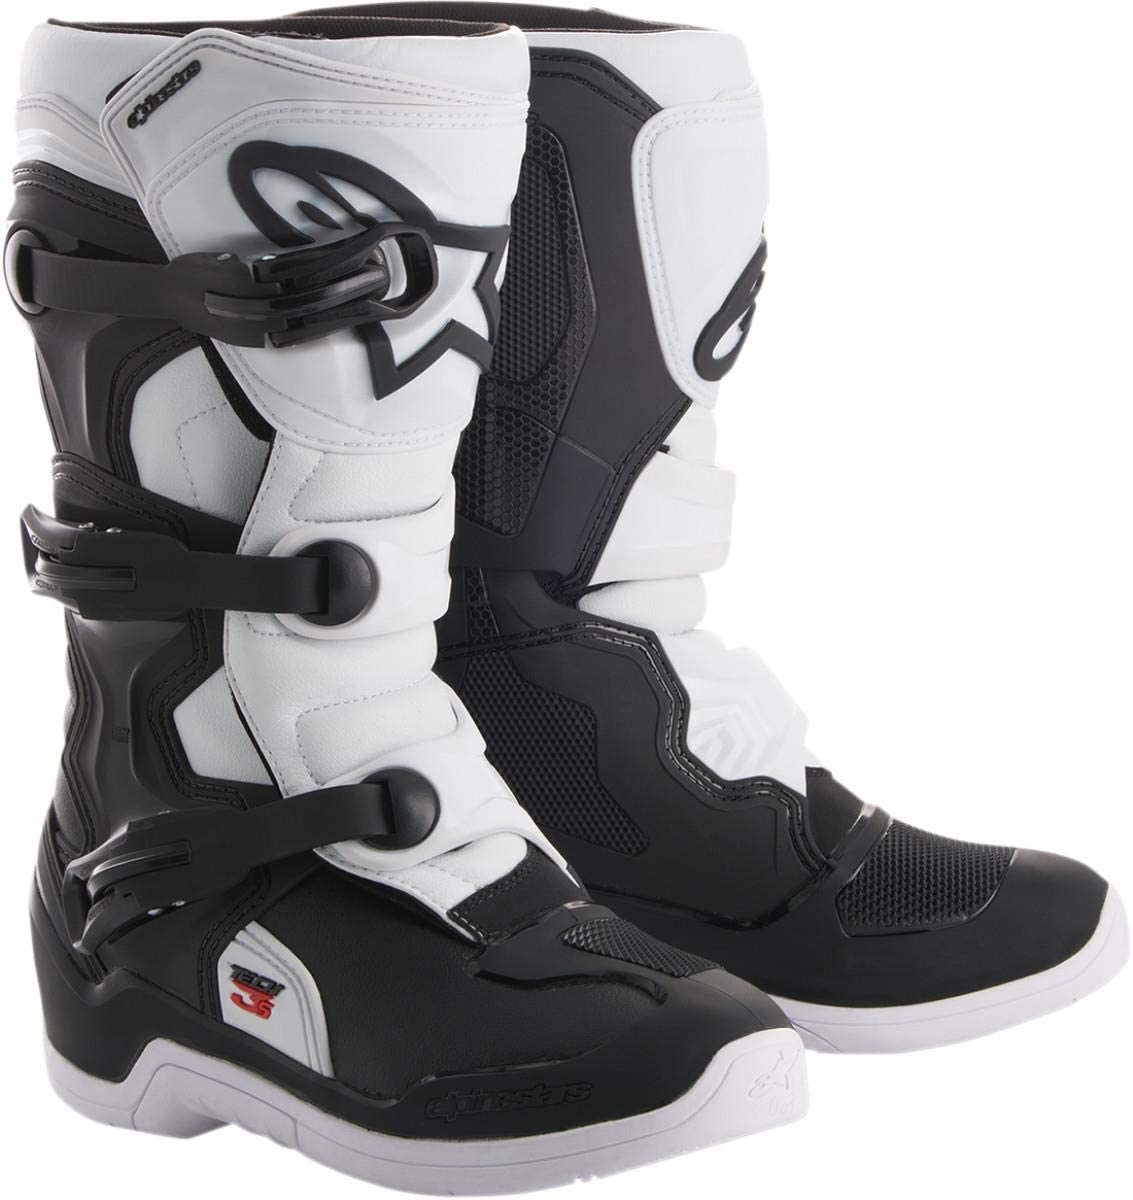 Alpinestars Free shipping on posting reviews Youth Tech 3S Ranking TOP2 White-Y5 Boots-Black